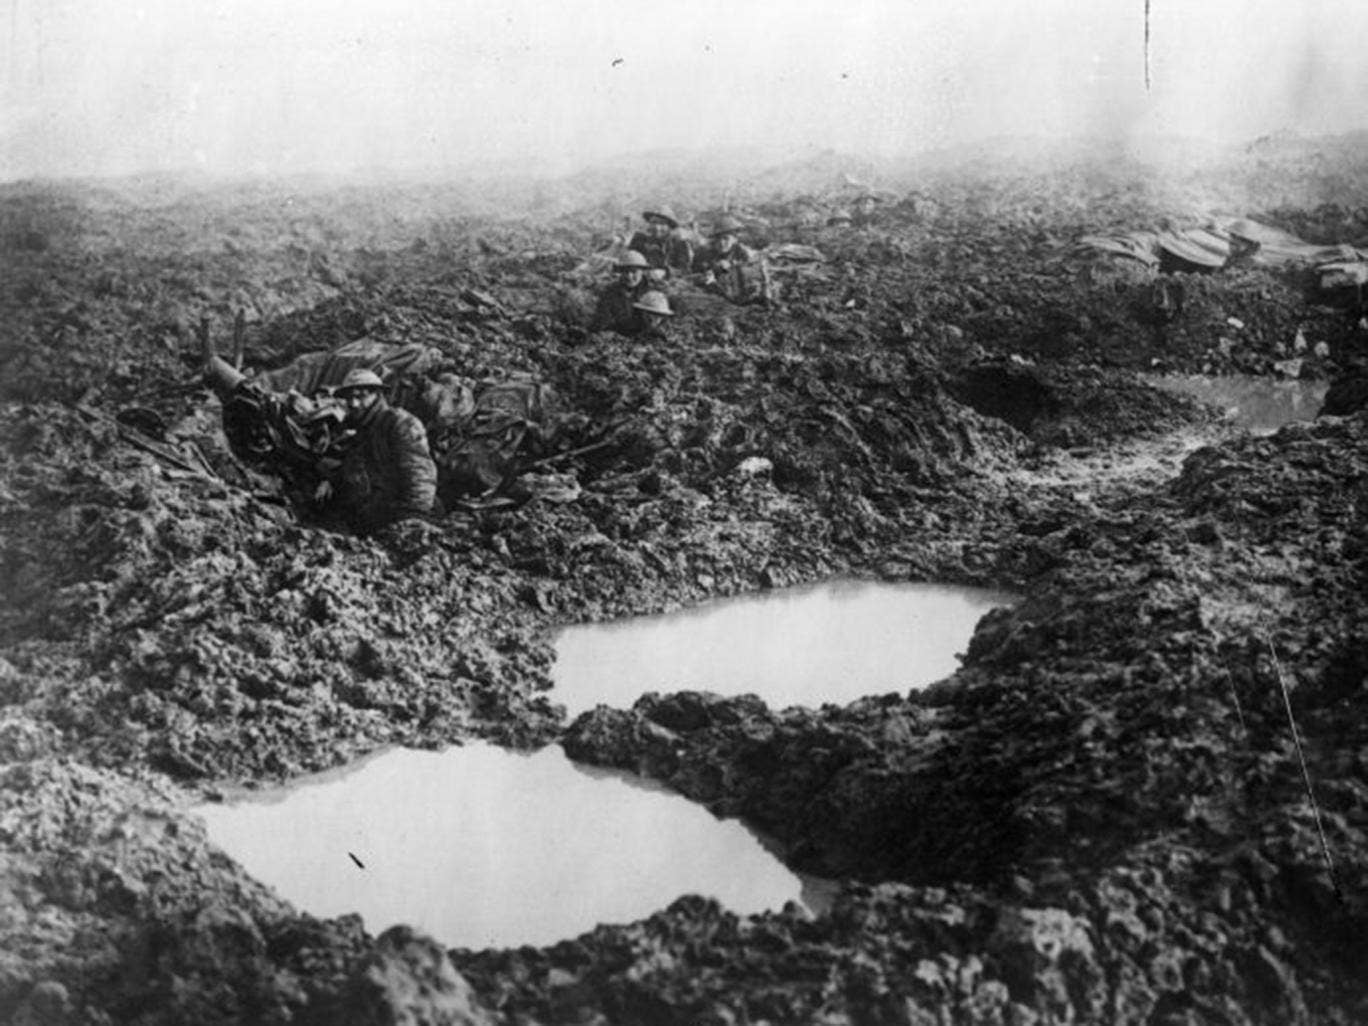 Wet weather plagued the Third Battle of Ypres, which included the battles of Langemarck and Passchendaele. Perhaps 70,000 Allied soldiers died between 31 July and 10 November